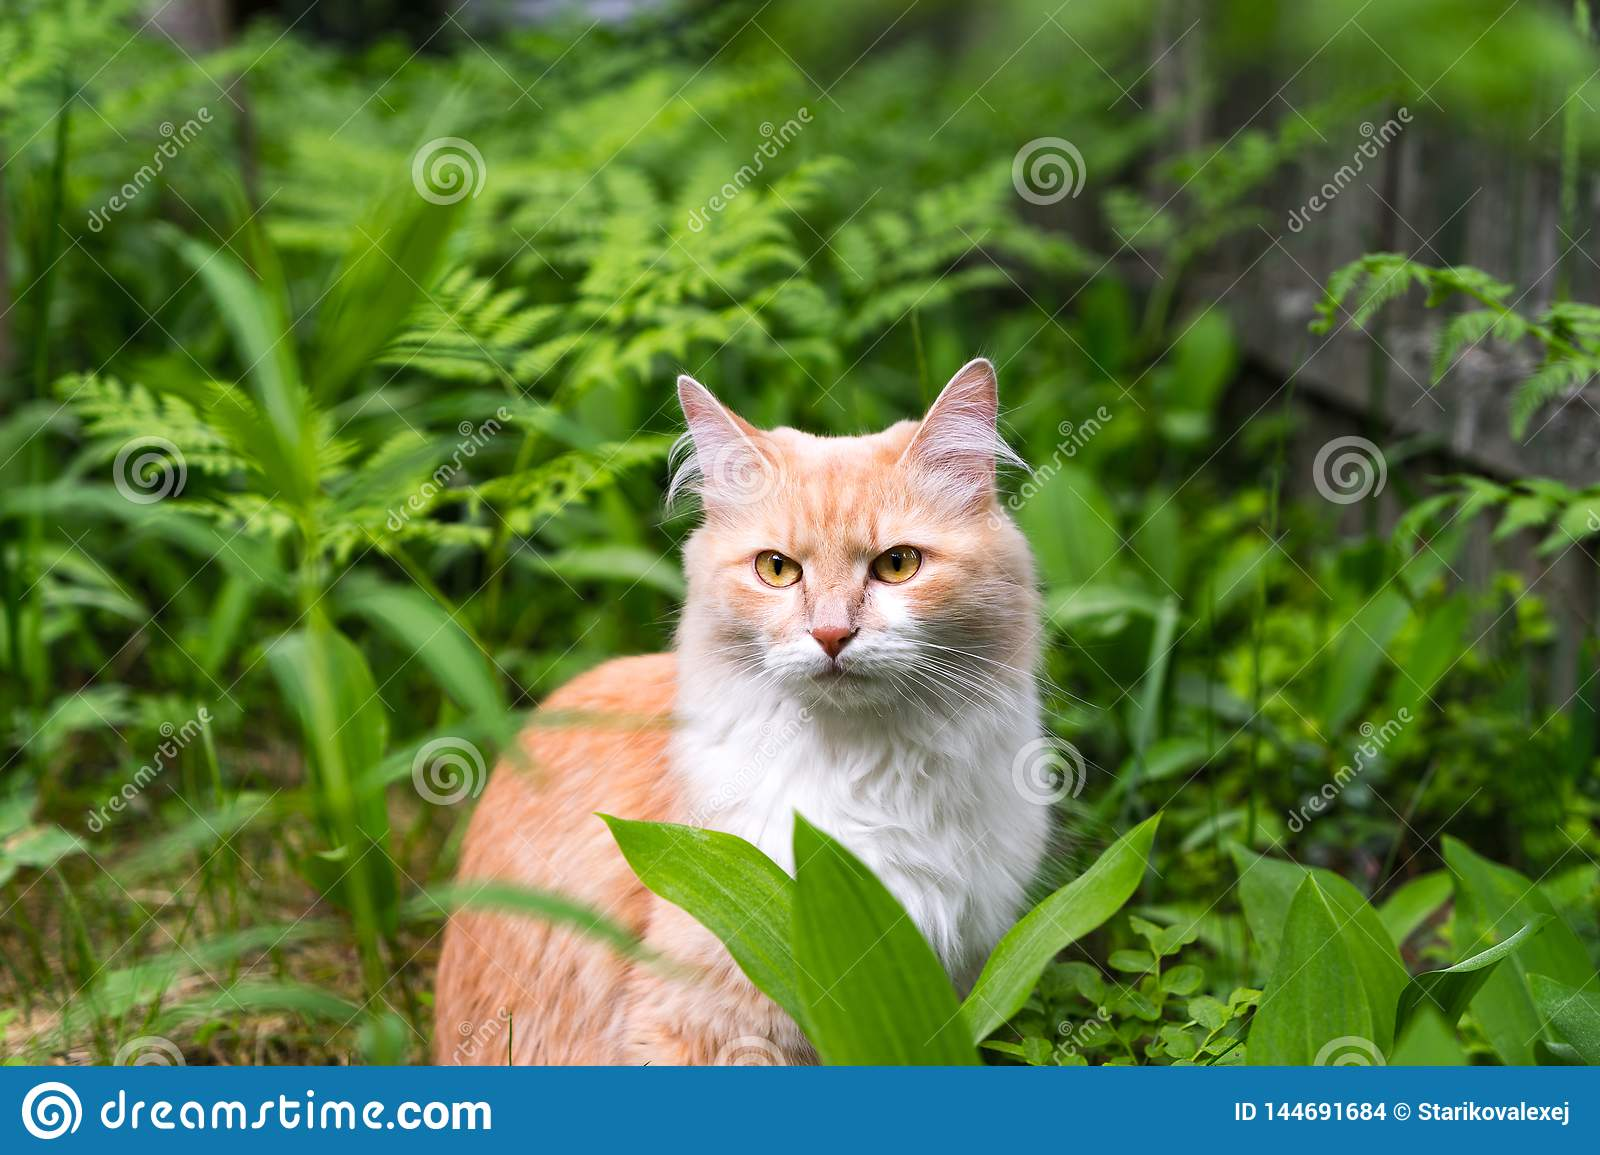 Cat on the grass , cat in the forest